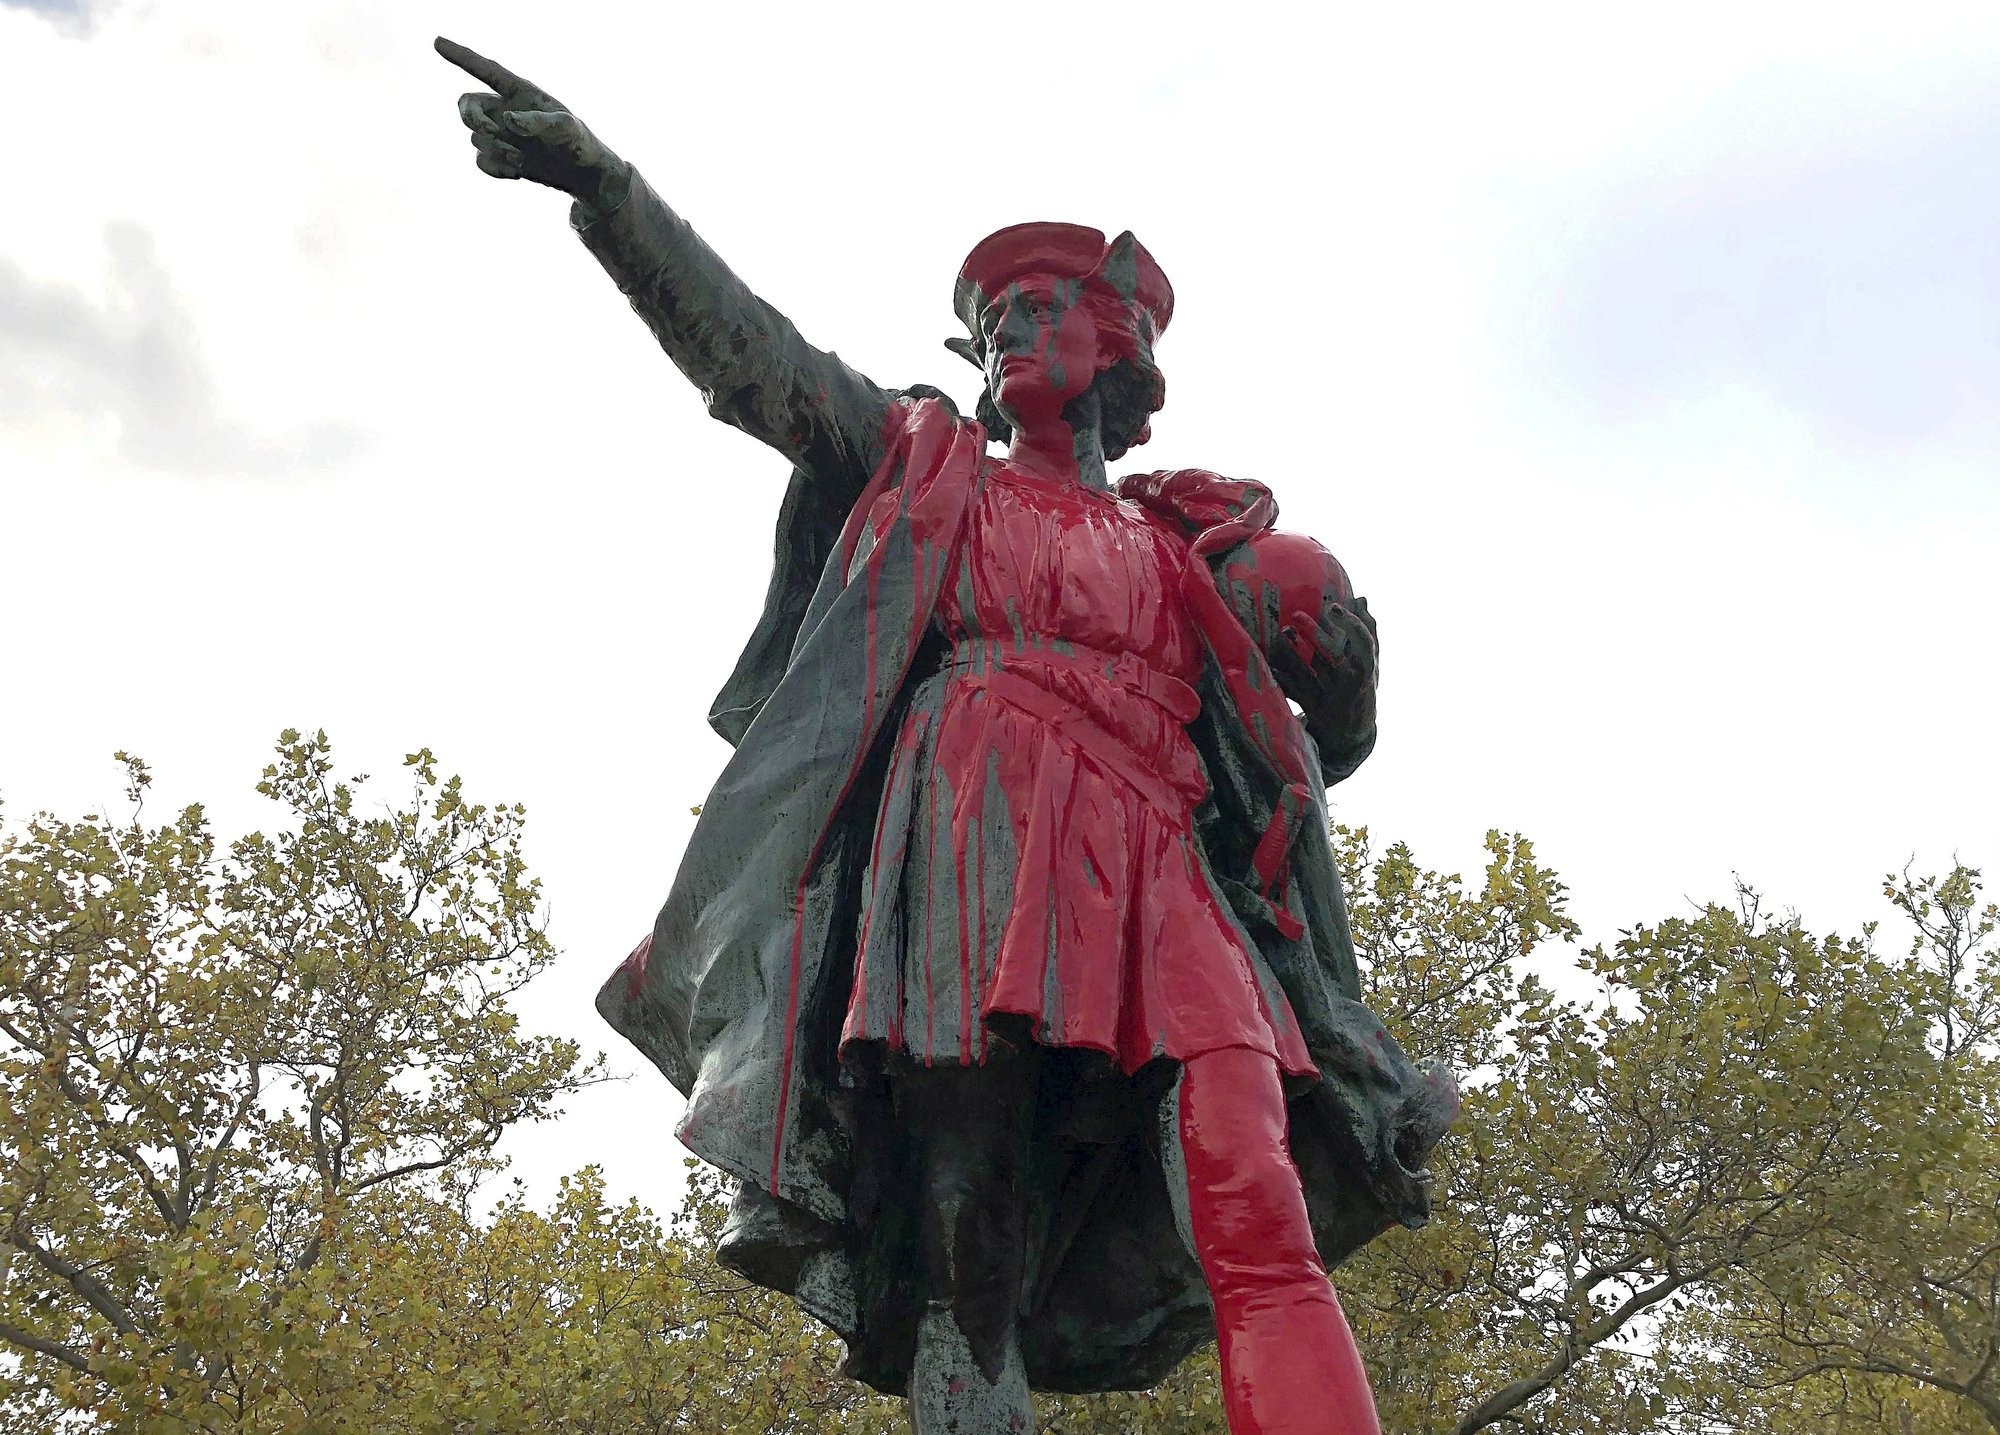 Columbus statues vandalized on US holiday named for him